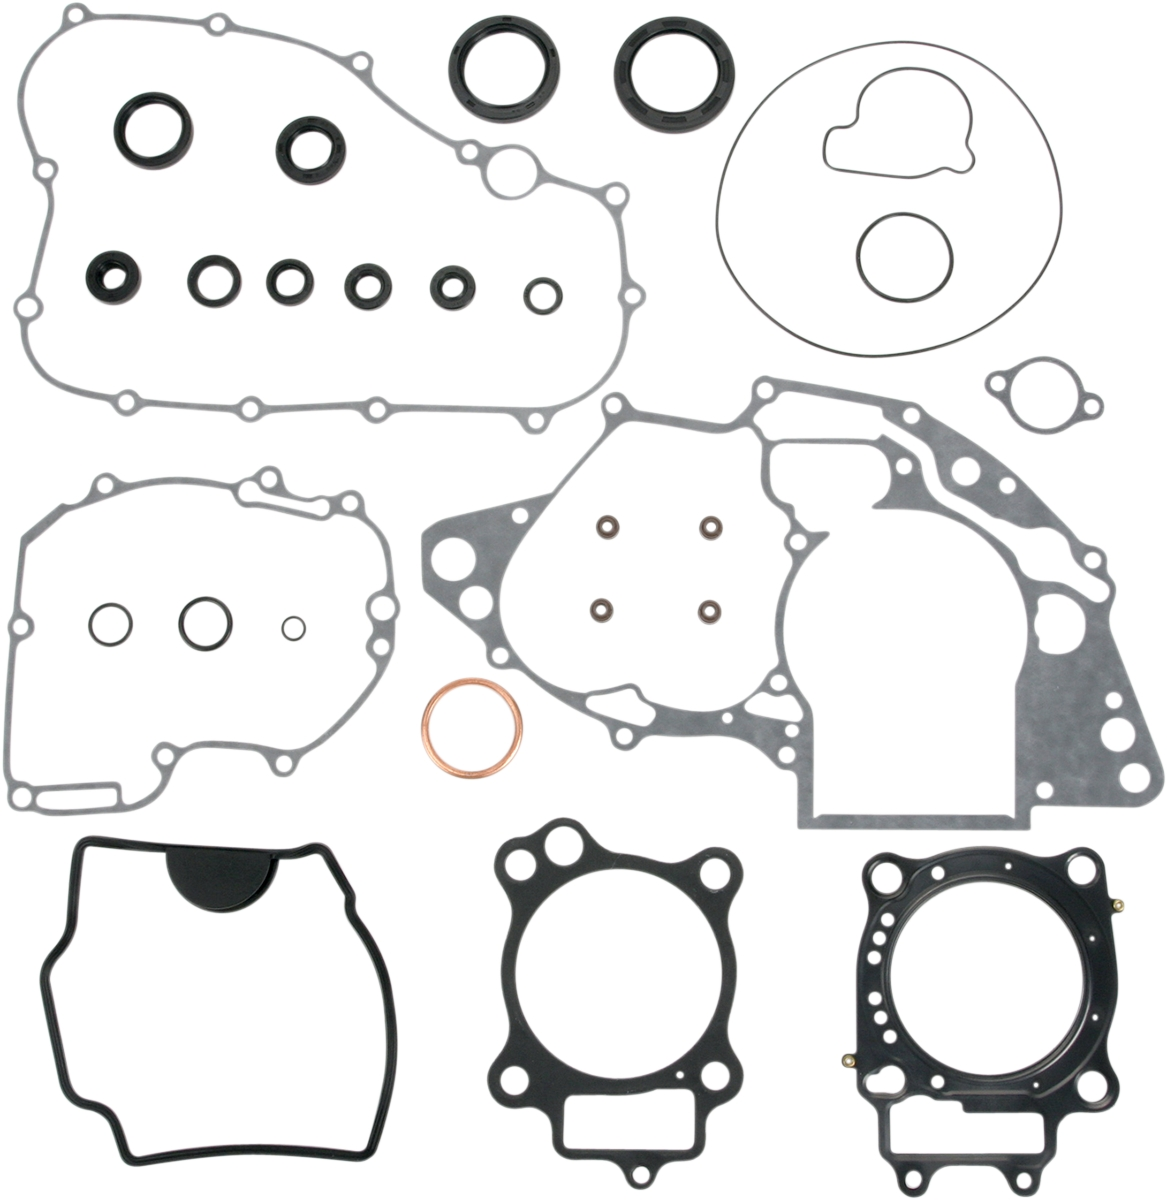 NEW MOOSE RACING 0934-1475 Complete Gasket Kit with Oil